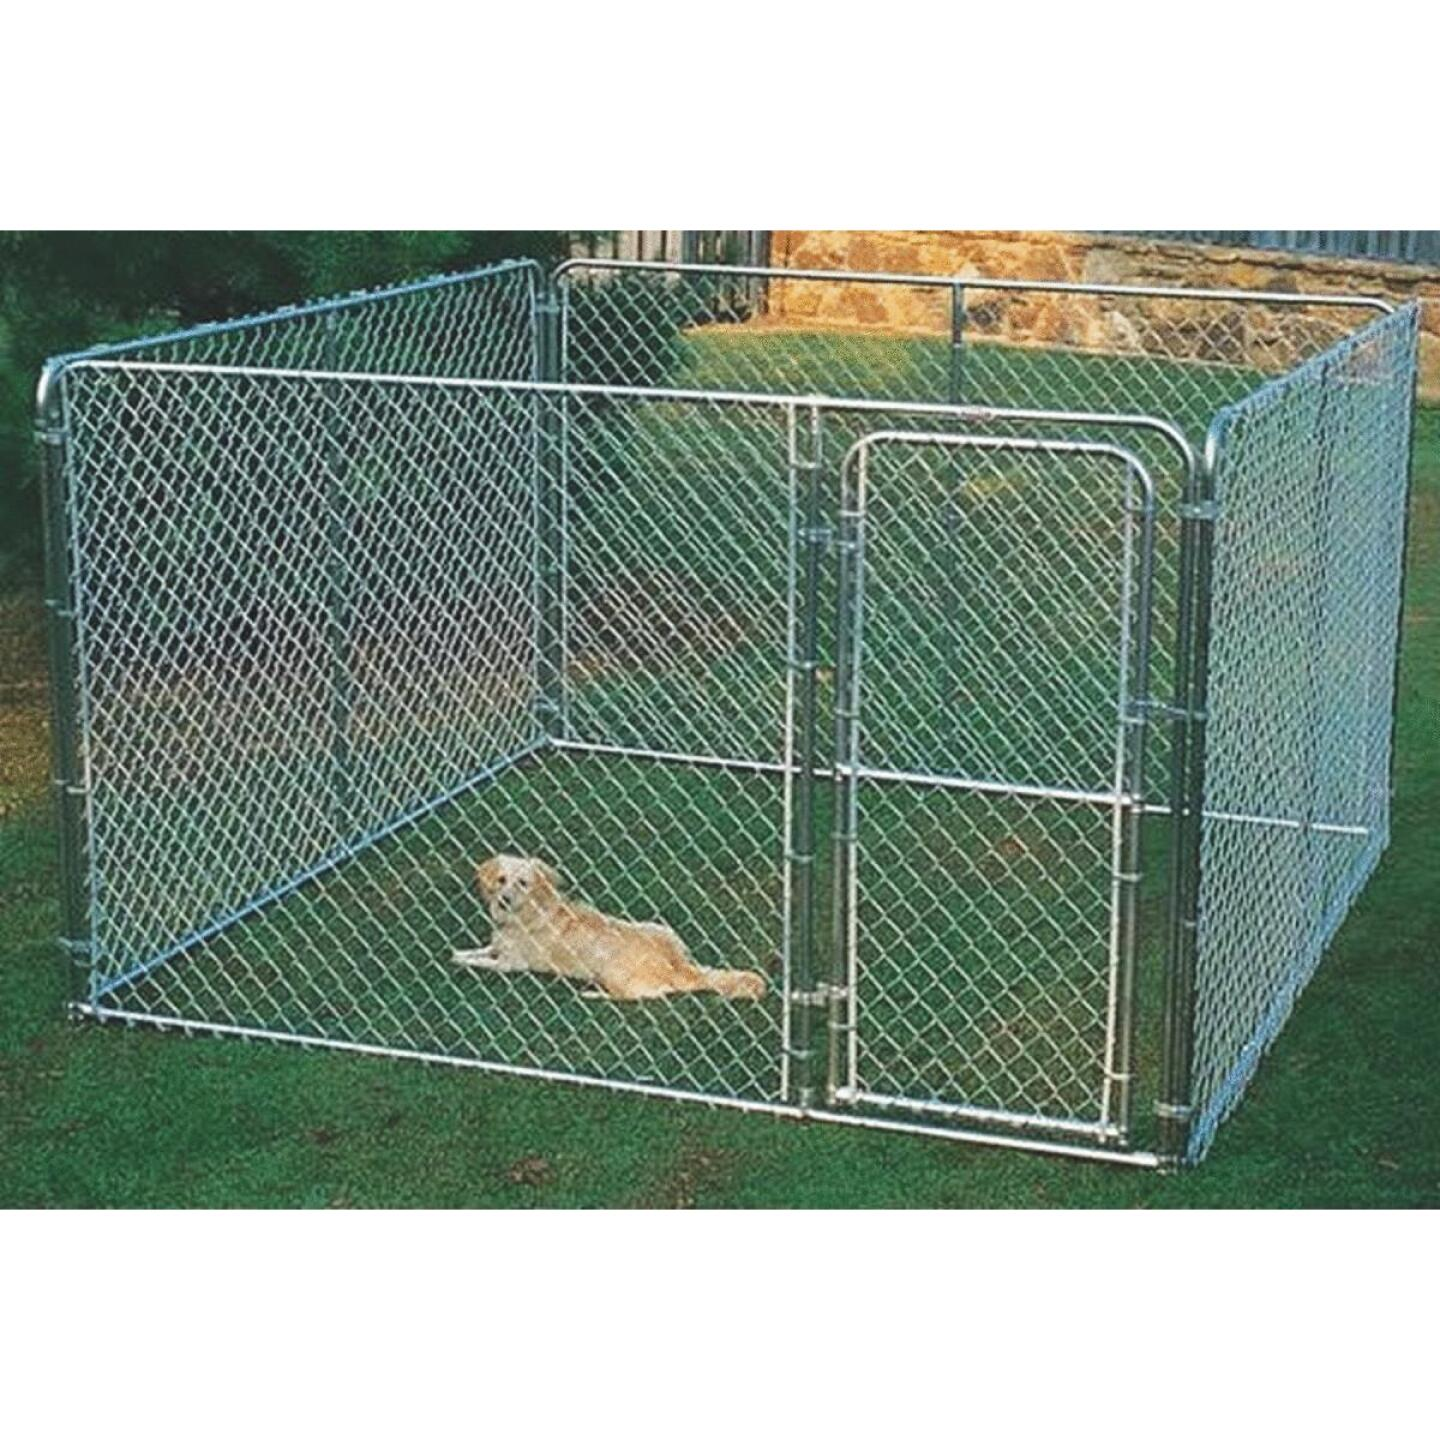 Fence Master Silver Series 10 Ft. W. x 6 Ft. H. x 10 Ft. L. Steel Outdoor Pet Kennel Image 1